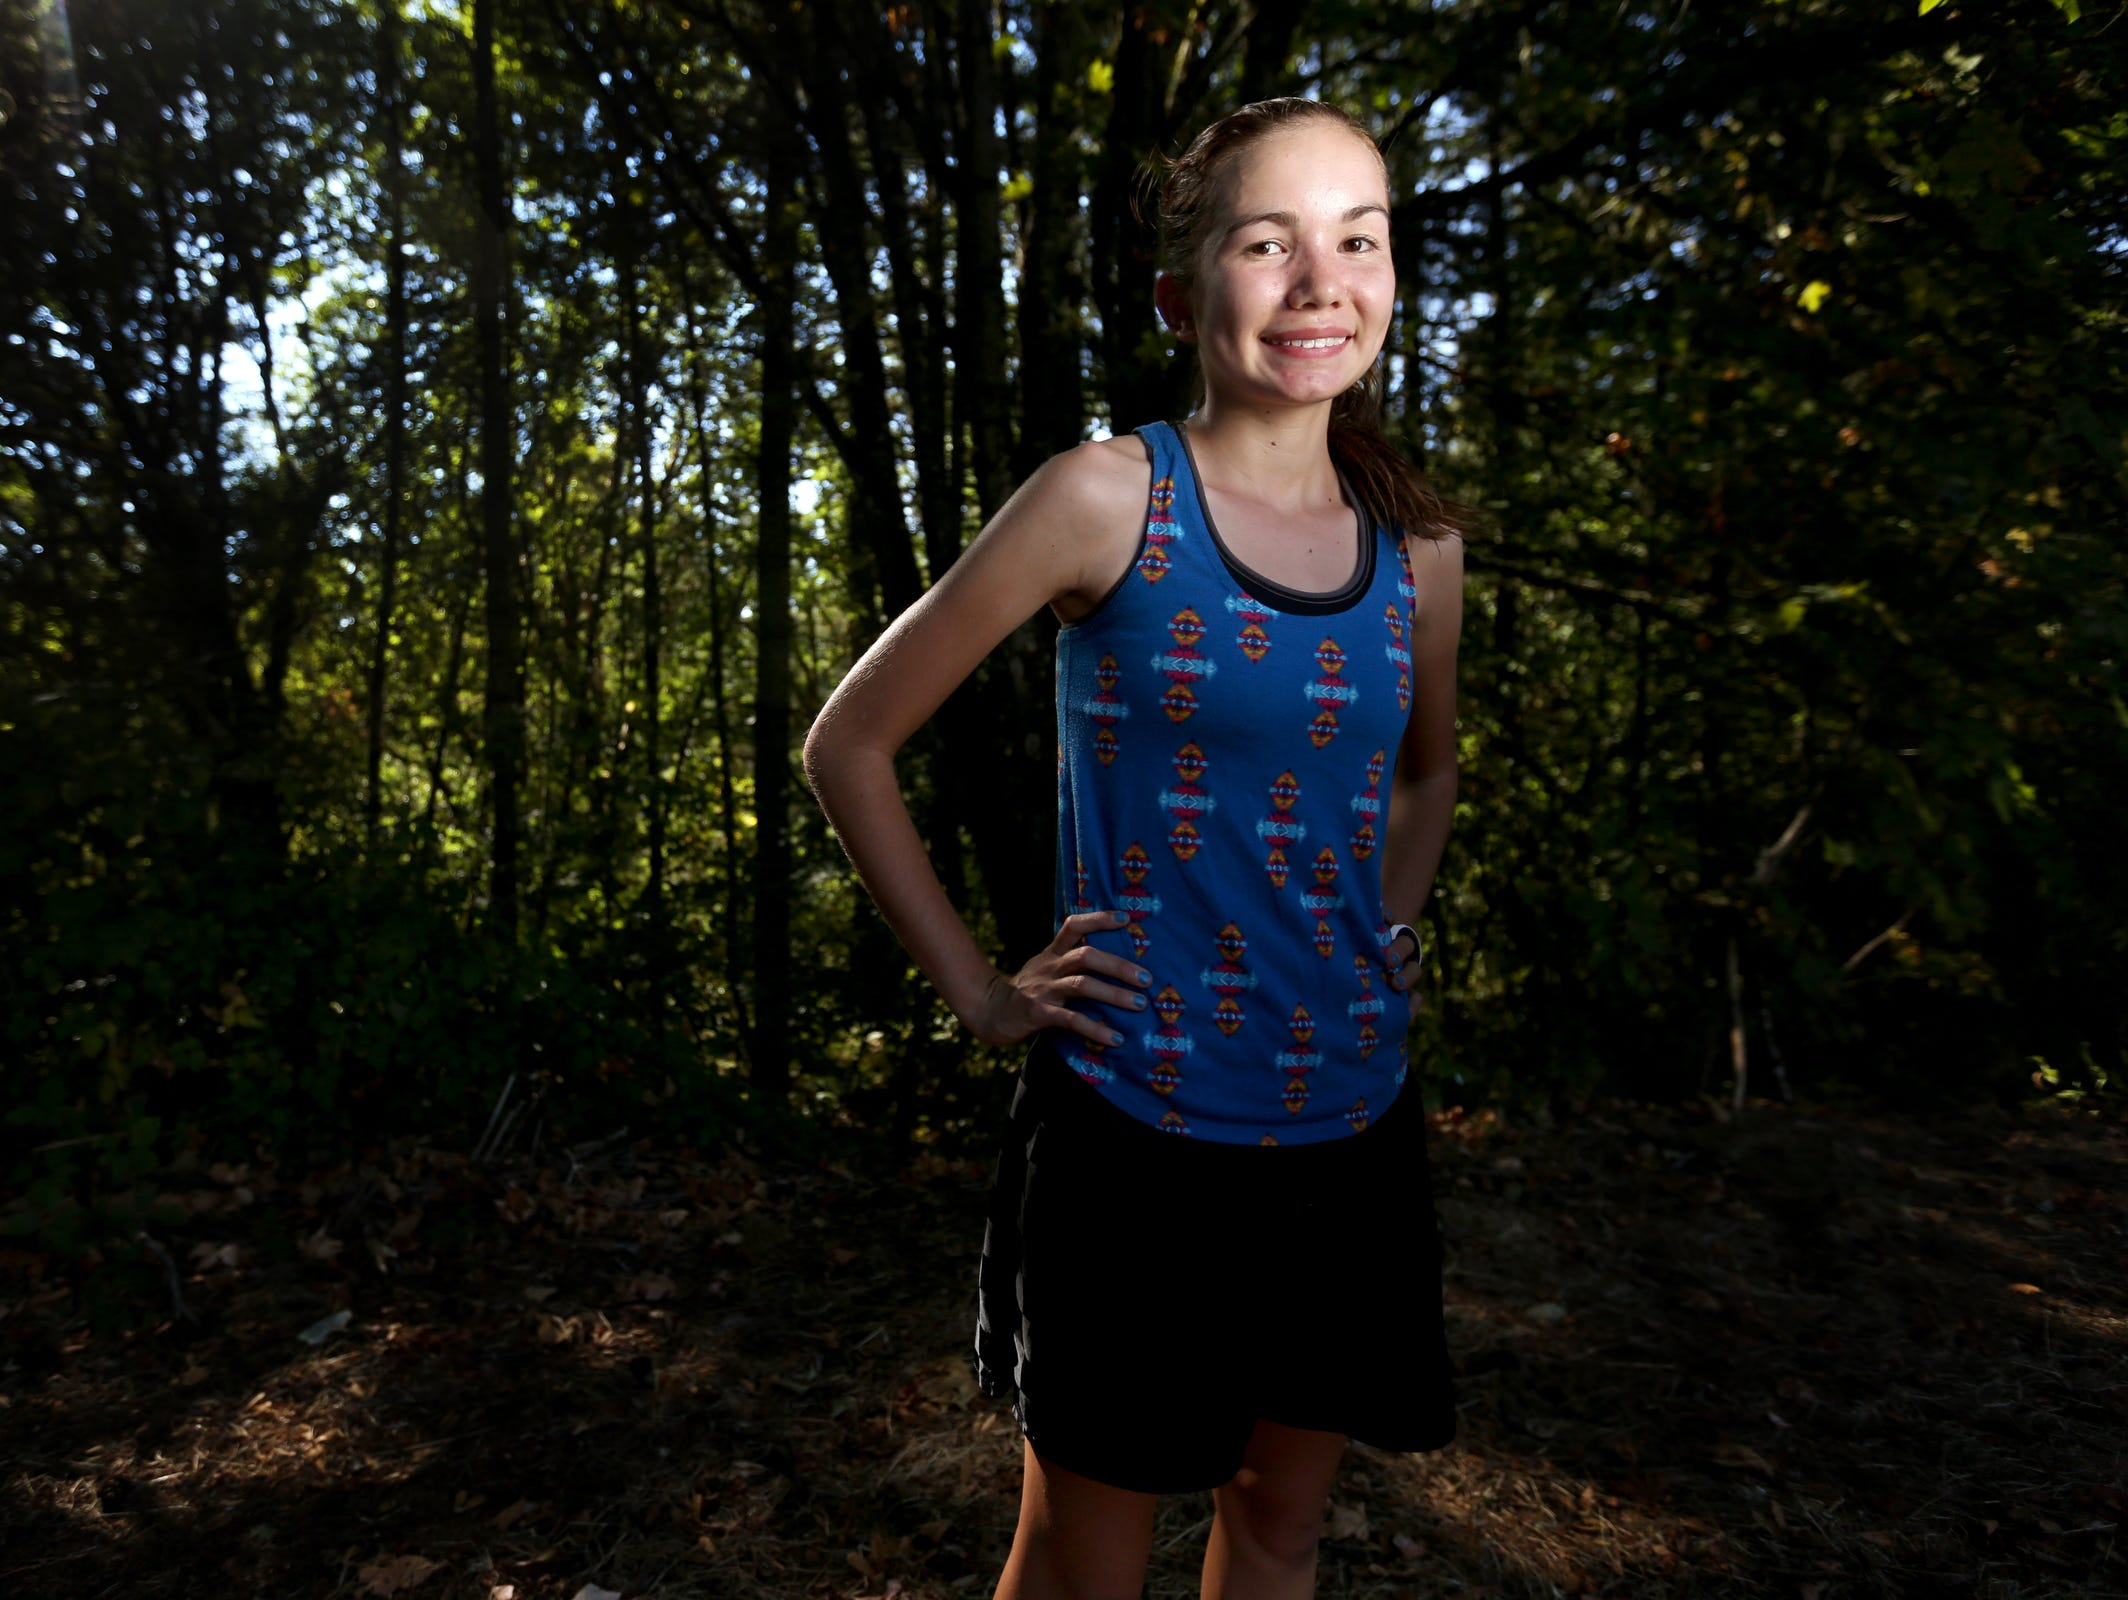 Sophomore Ginger Murnieks, a cross country runner, stands for a portrait at Sprague High School in Salem on Wednesday, Aug. 24, 2016.